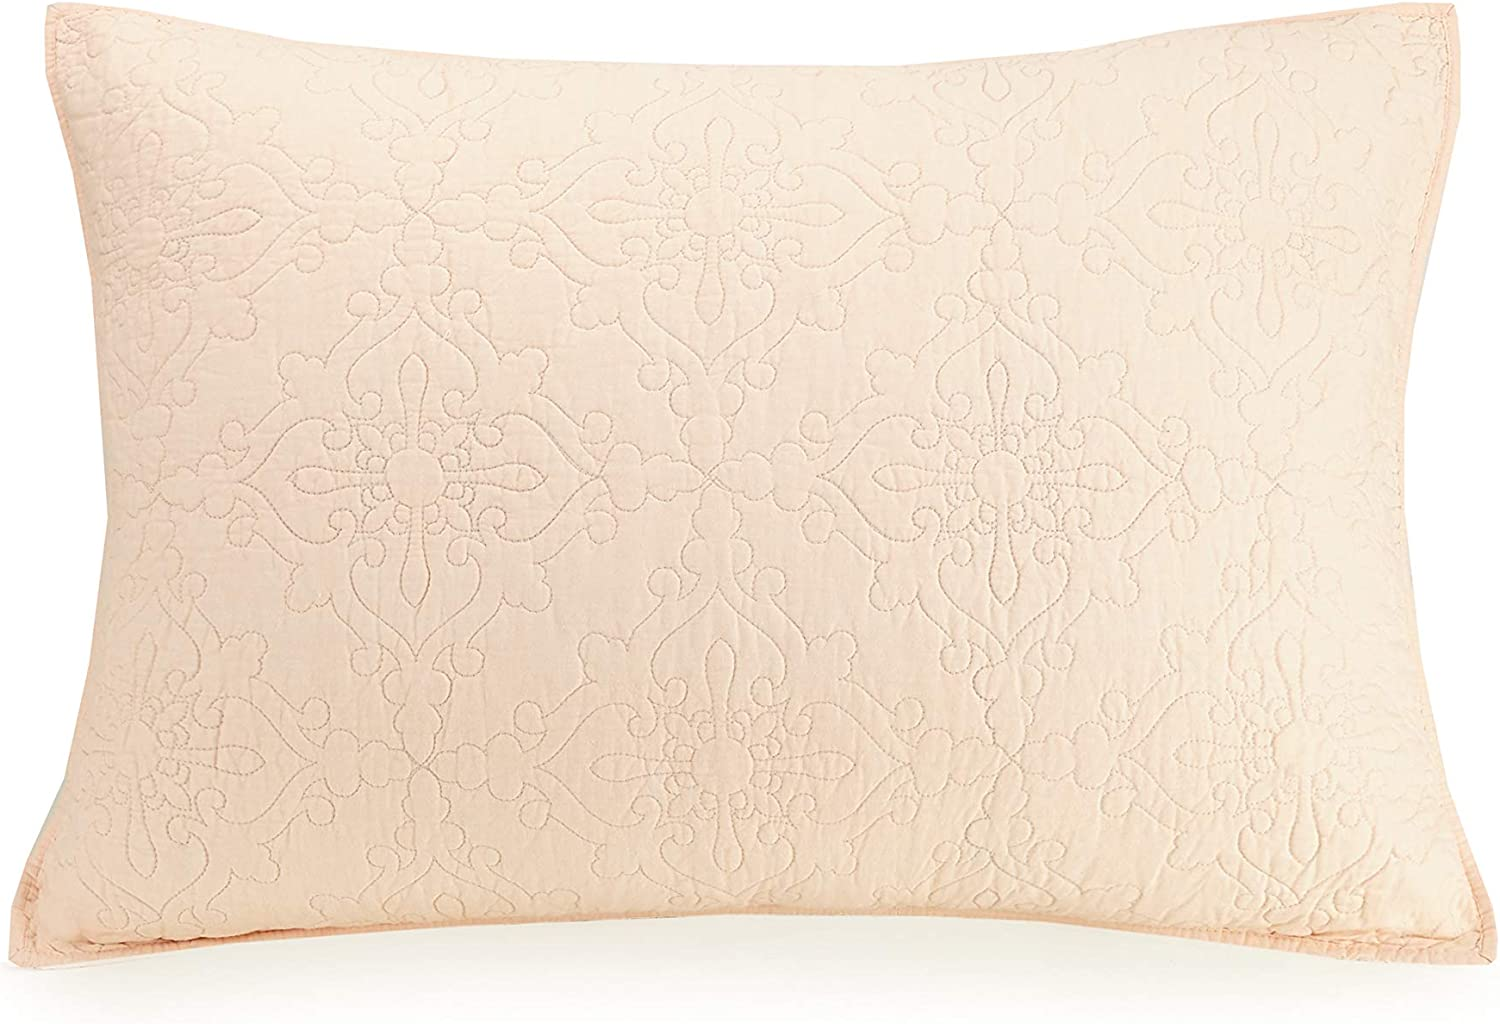 Mary Jane's Home Darling LACE SHAM, Standard, Blush